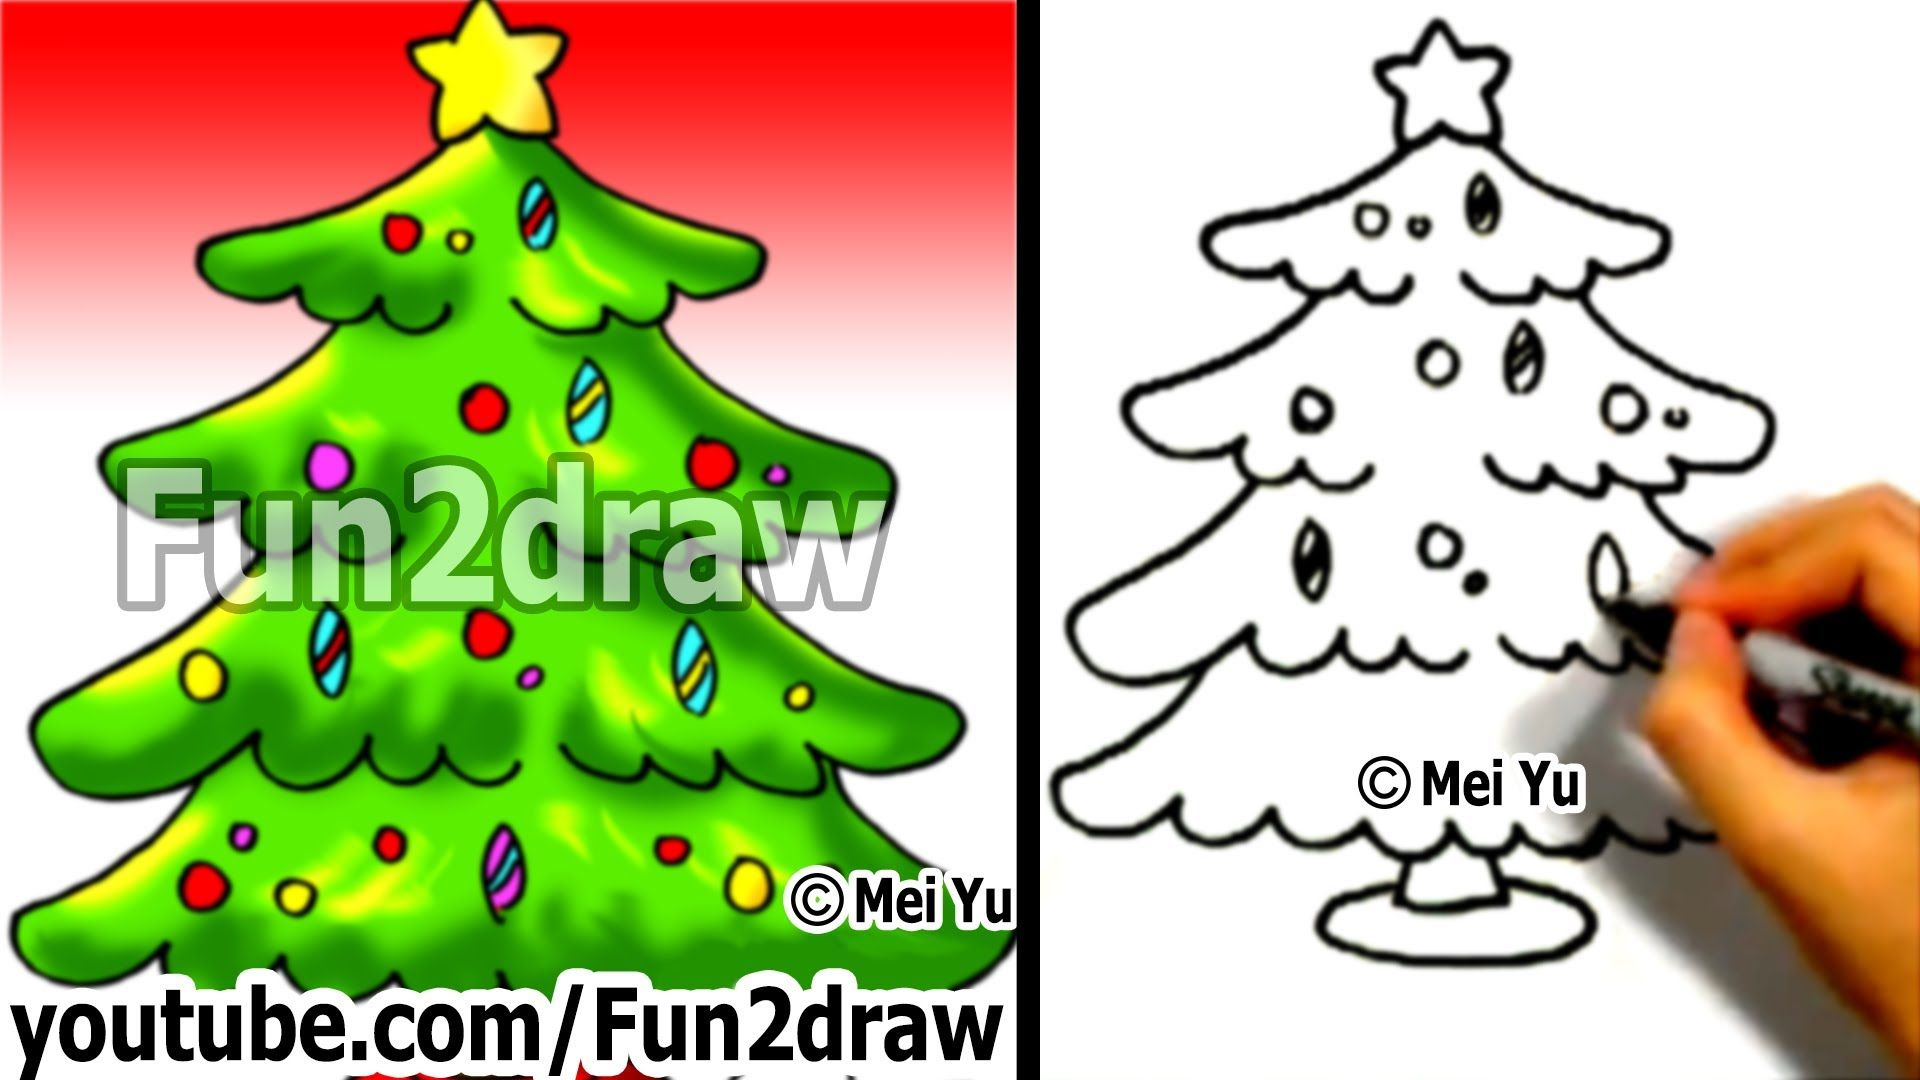 How To Draw A Christmas Tree In 1 Min Easy Cartoon Drawings Cartoon Drawings Christmas Tree Drawing